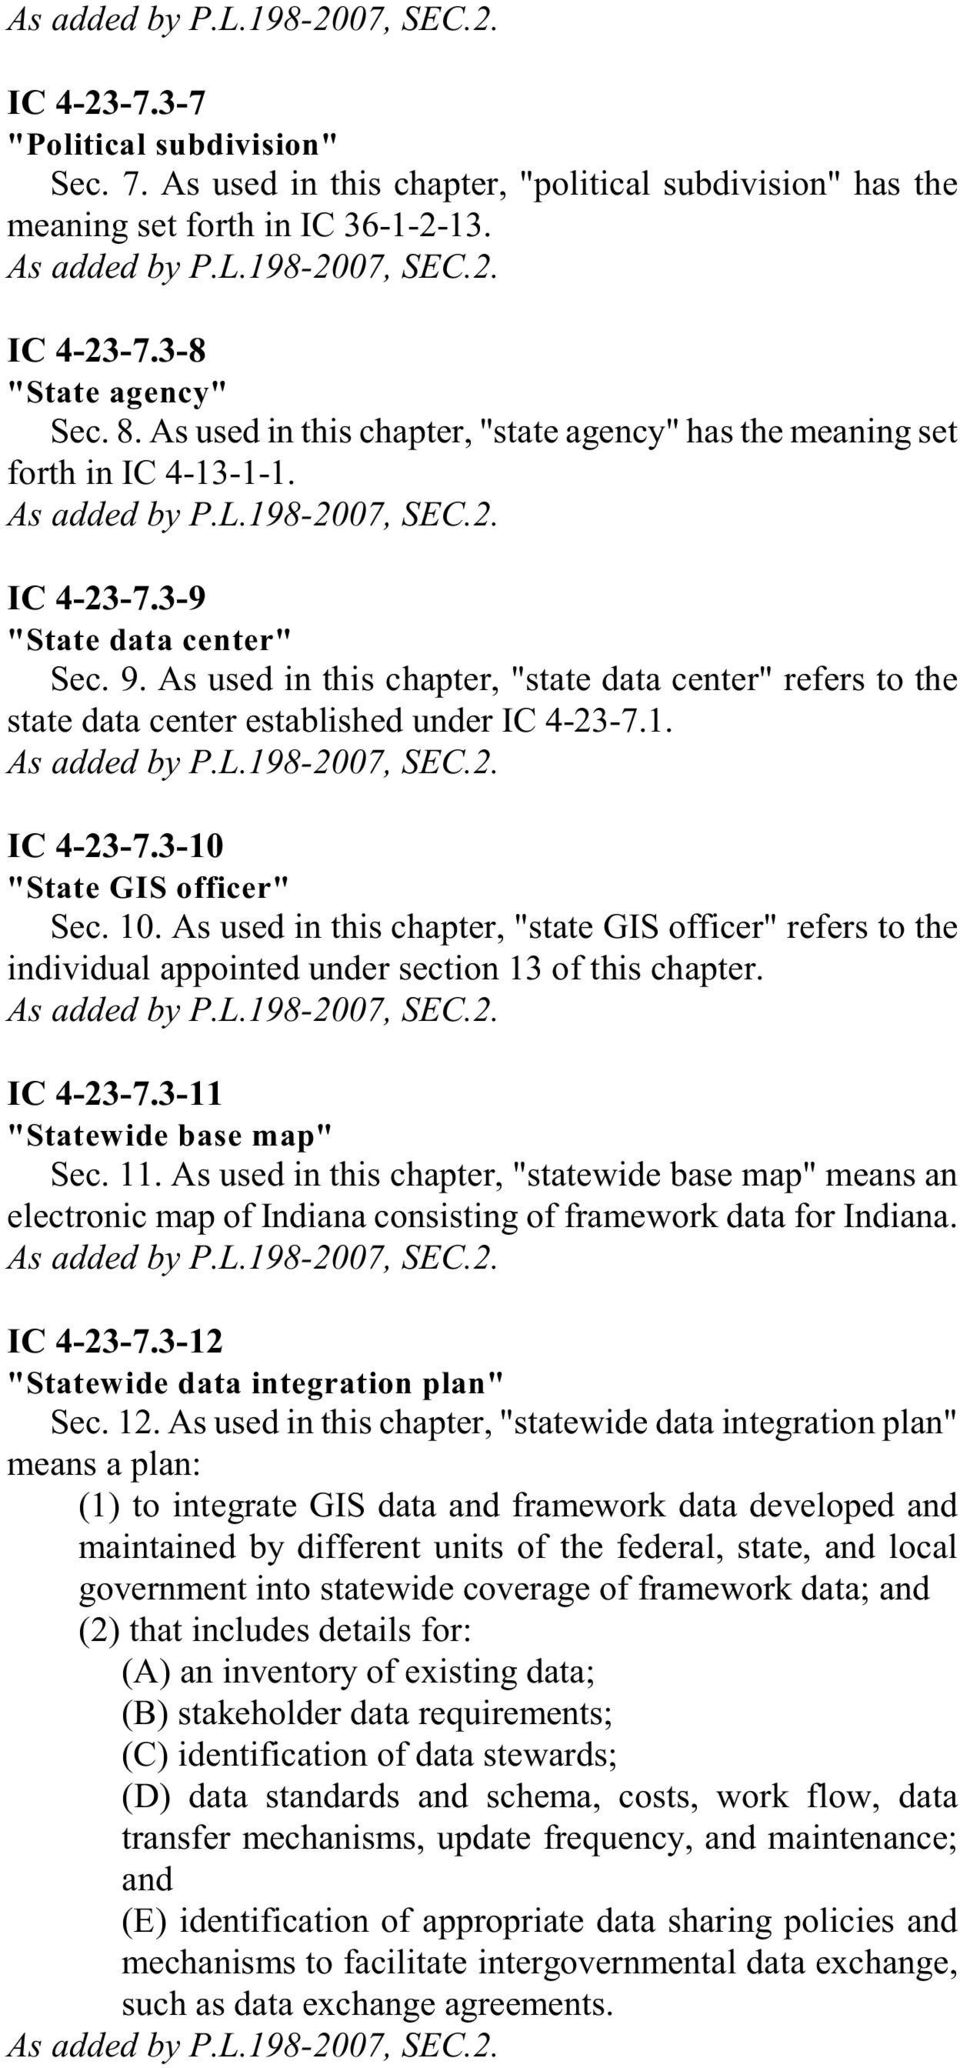 "As used in this chapter, ""state data center"" refers to the state data center established under IC 4-23-7.1. IC 4-23-7.3-10 ""State GIS officer"" Sec. 10."